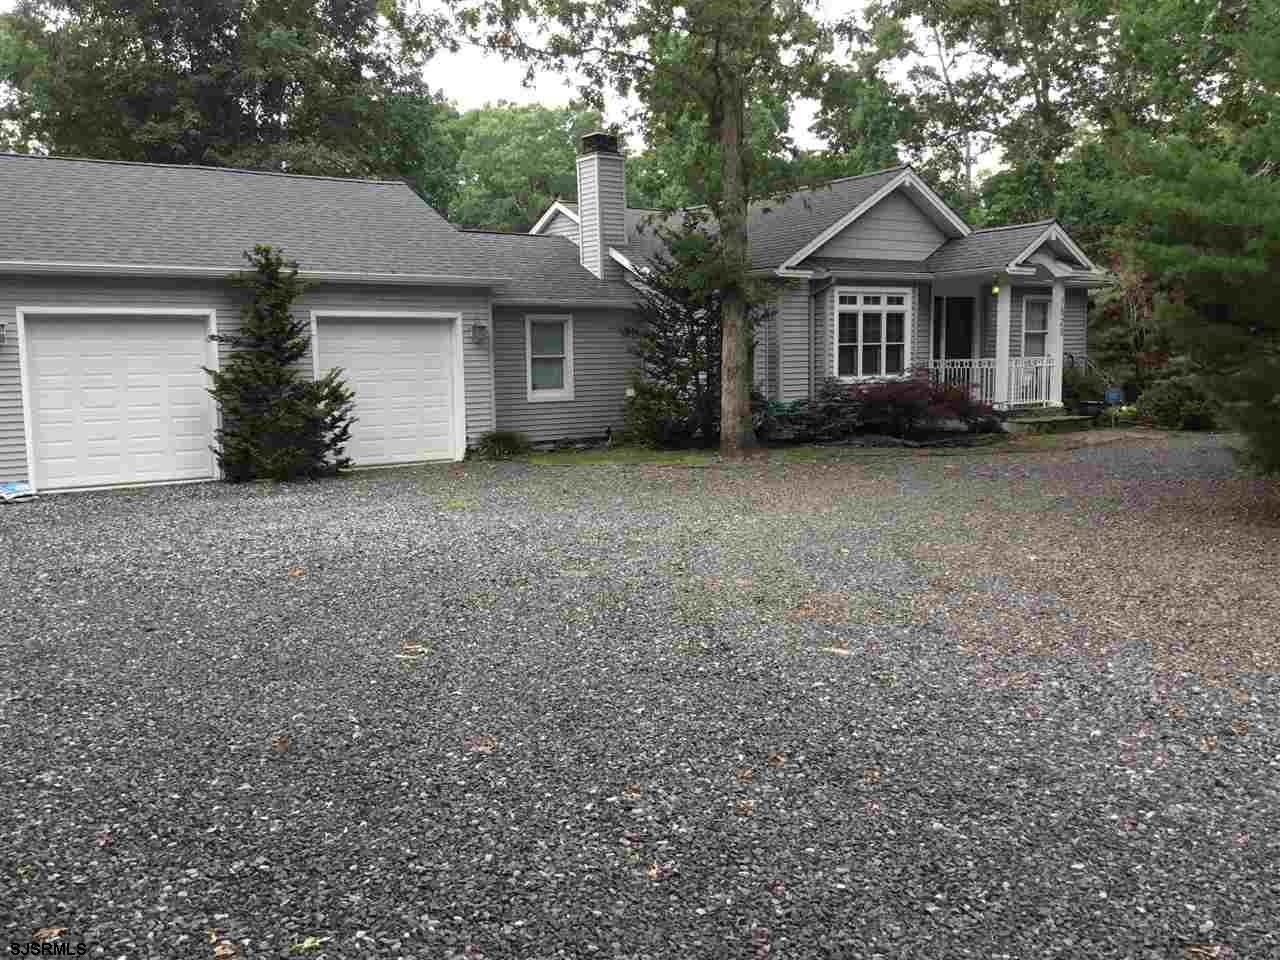 This incredible 3 bedroom, 2.5 bath home is situated on a 4.34 acre wooded lot with a BEAUTIFUL ingr